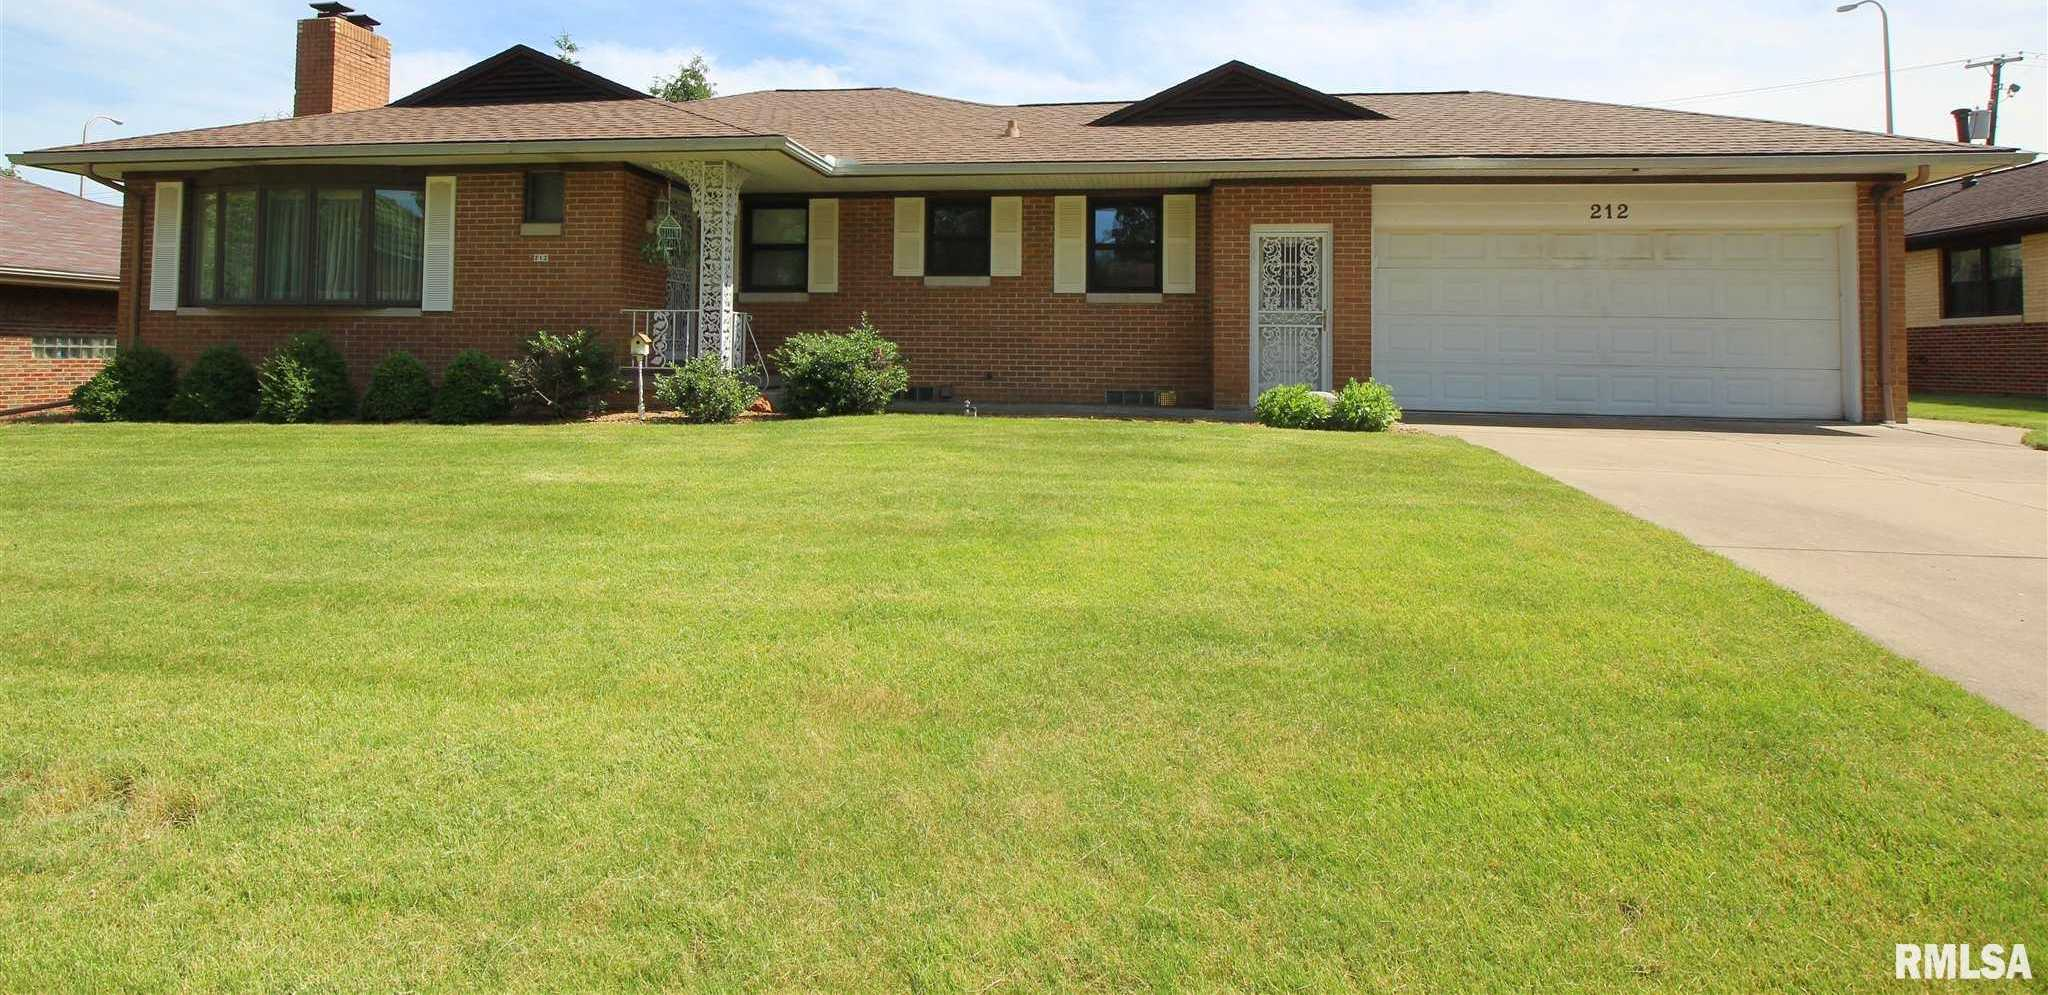 $149,900 - 2Br/3Ba -  for Sale in The Knolls, Peoria